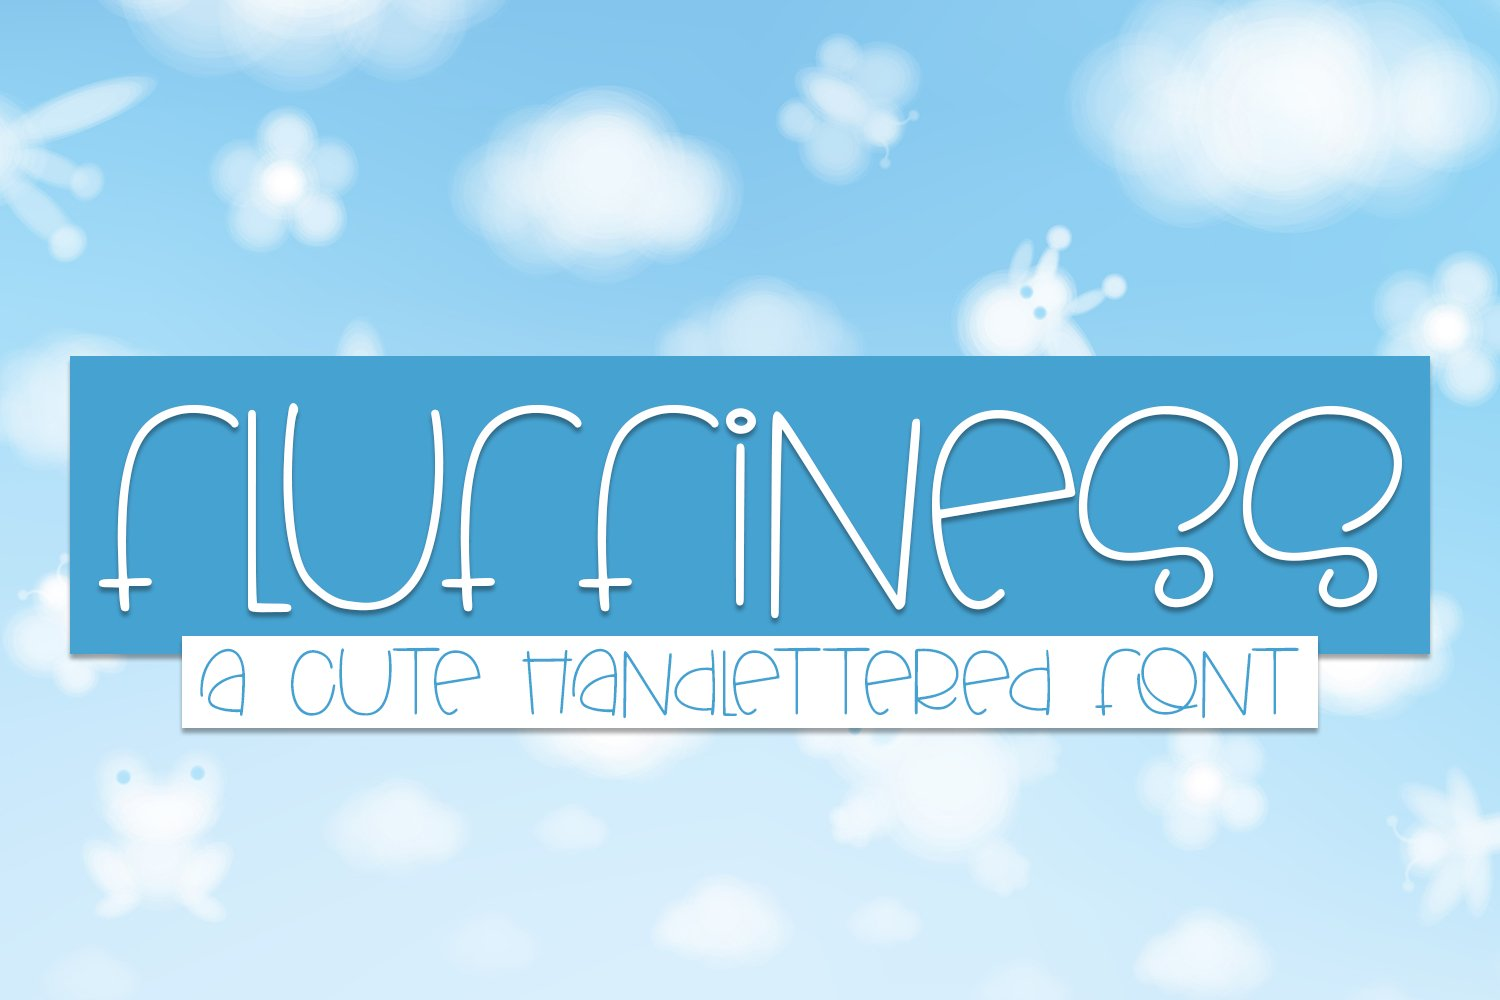 Fluffiness - A Cute Hand-lettered Font example image 1